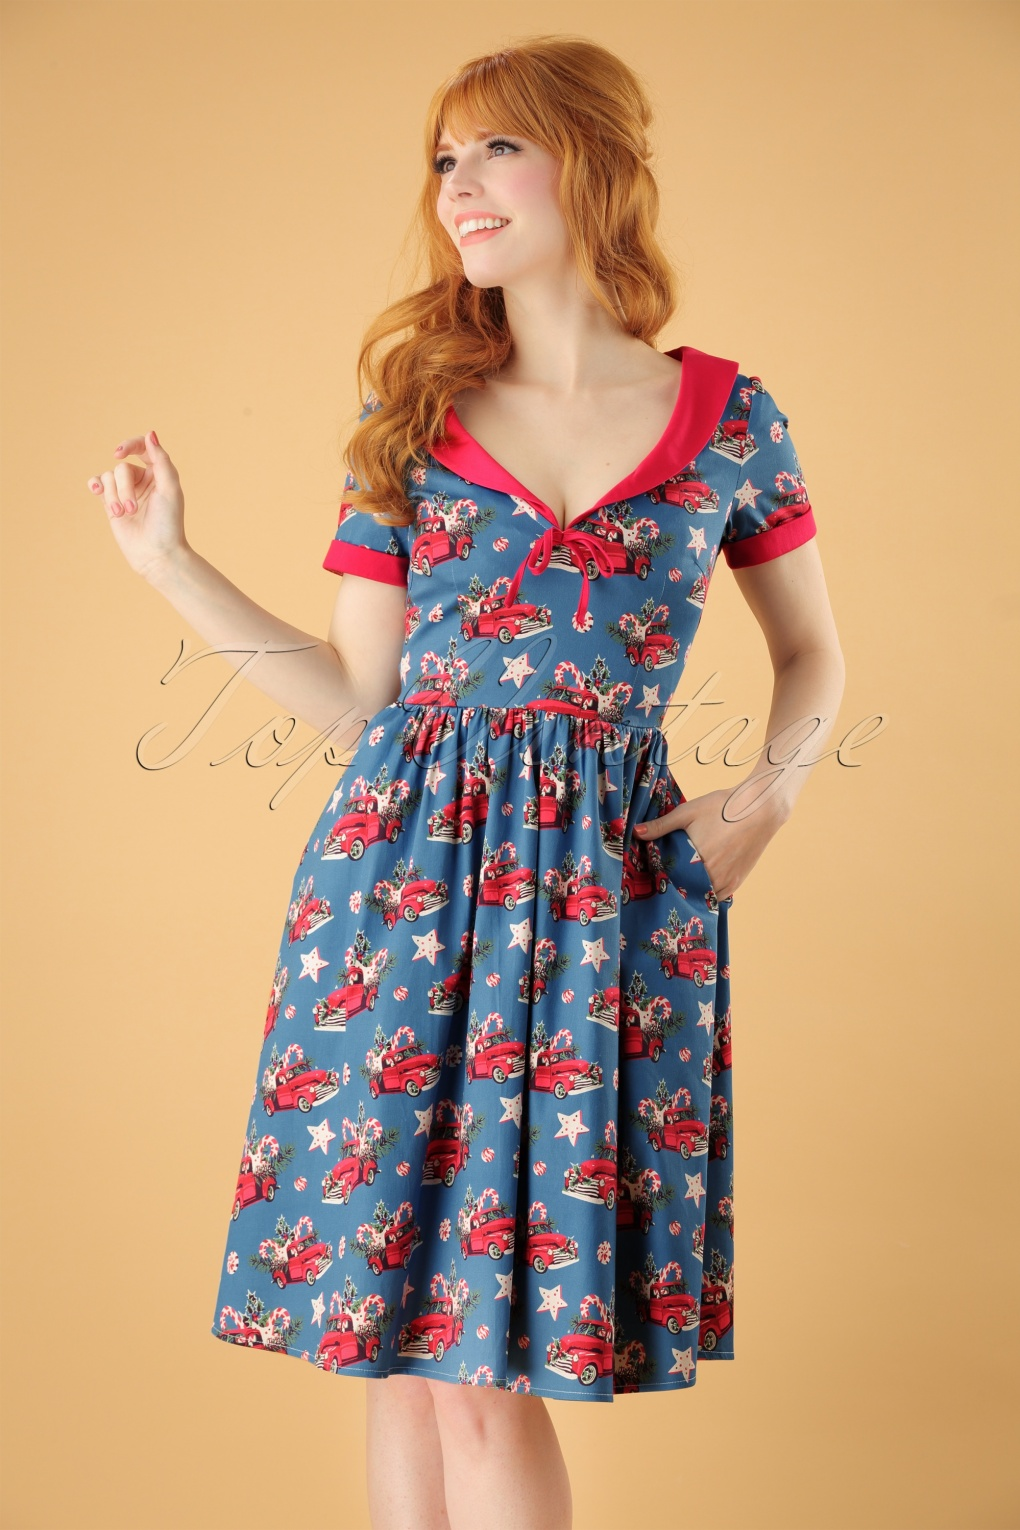 Vintage Christmas Dress Party Dresses Night Out Outfits